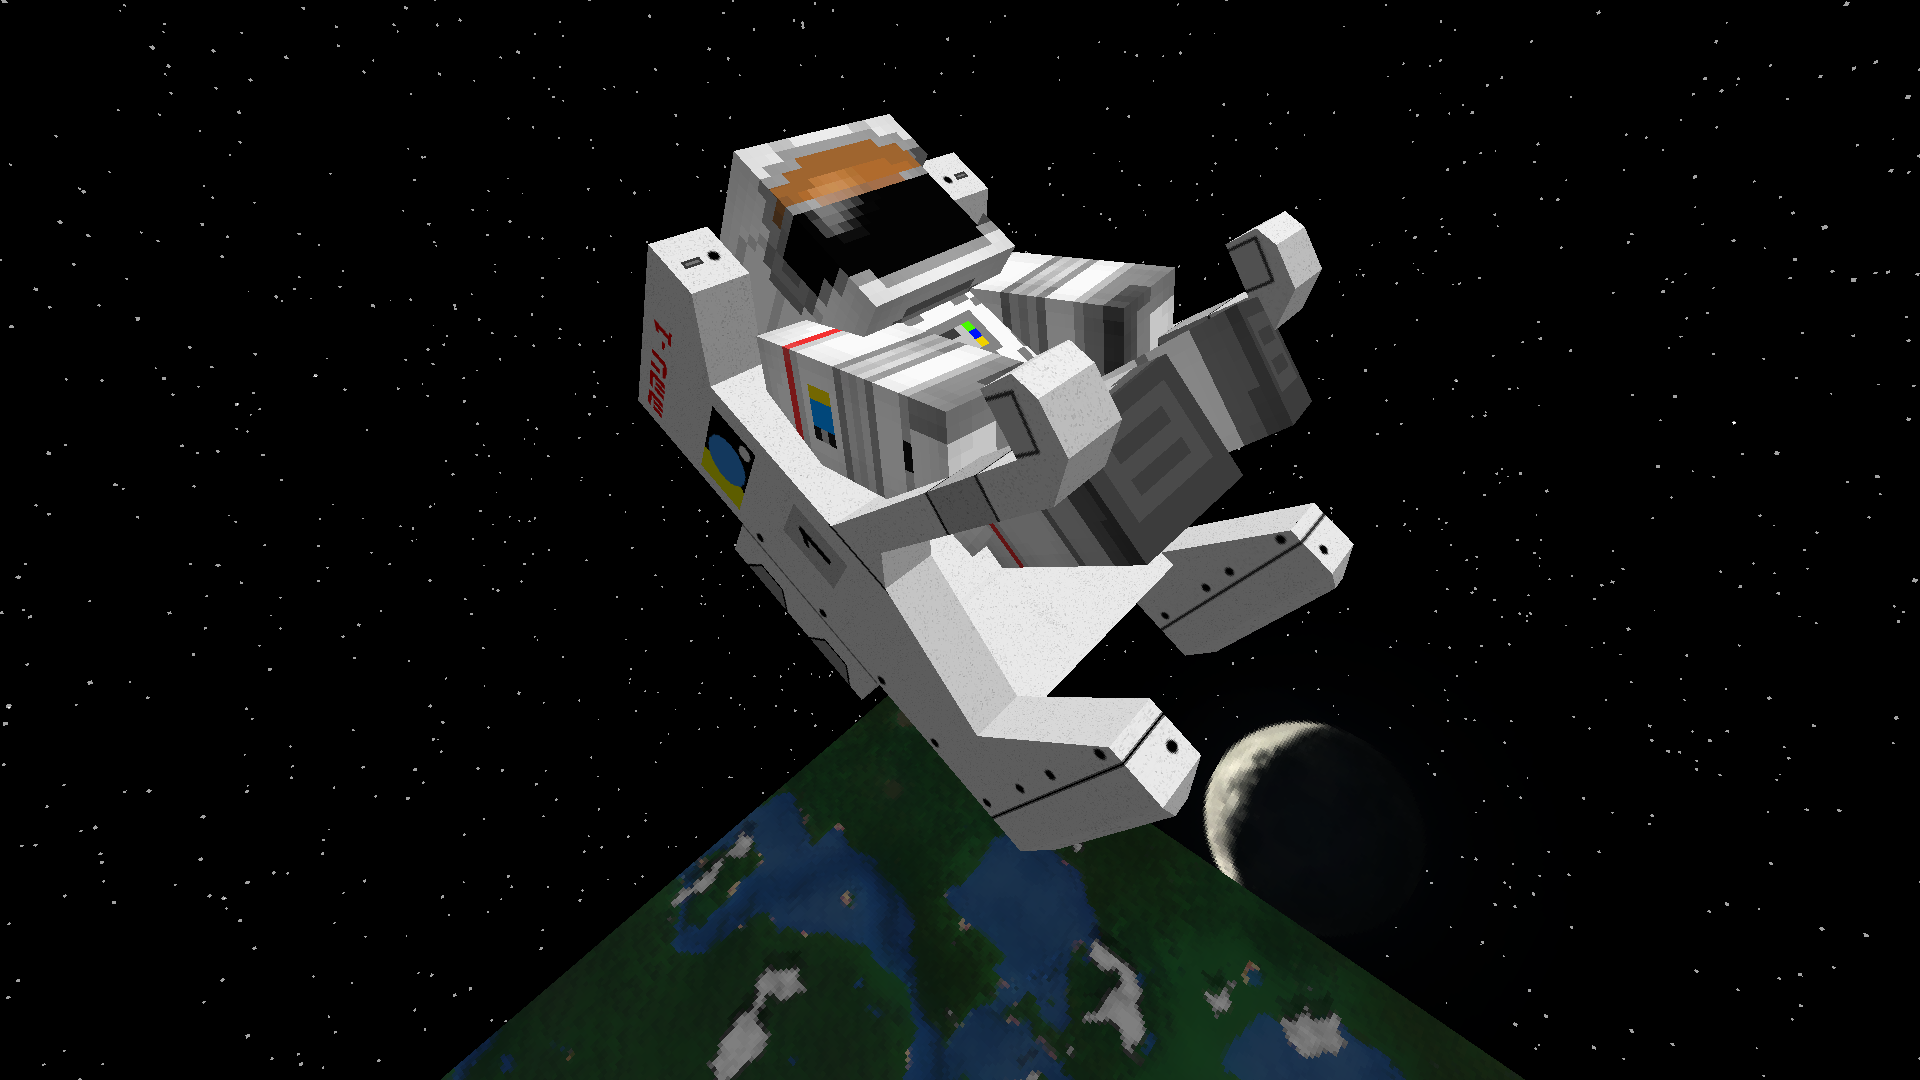 galacticraft space station - photo #33